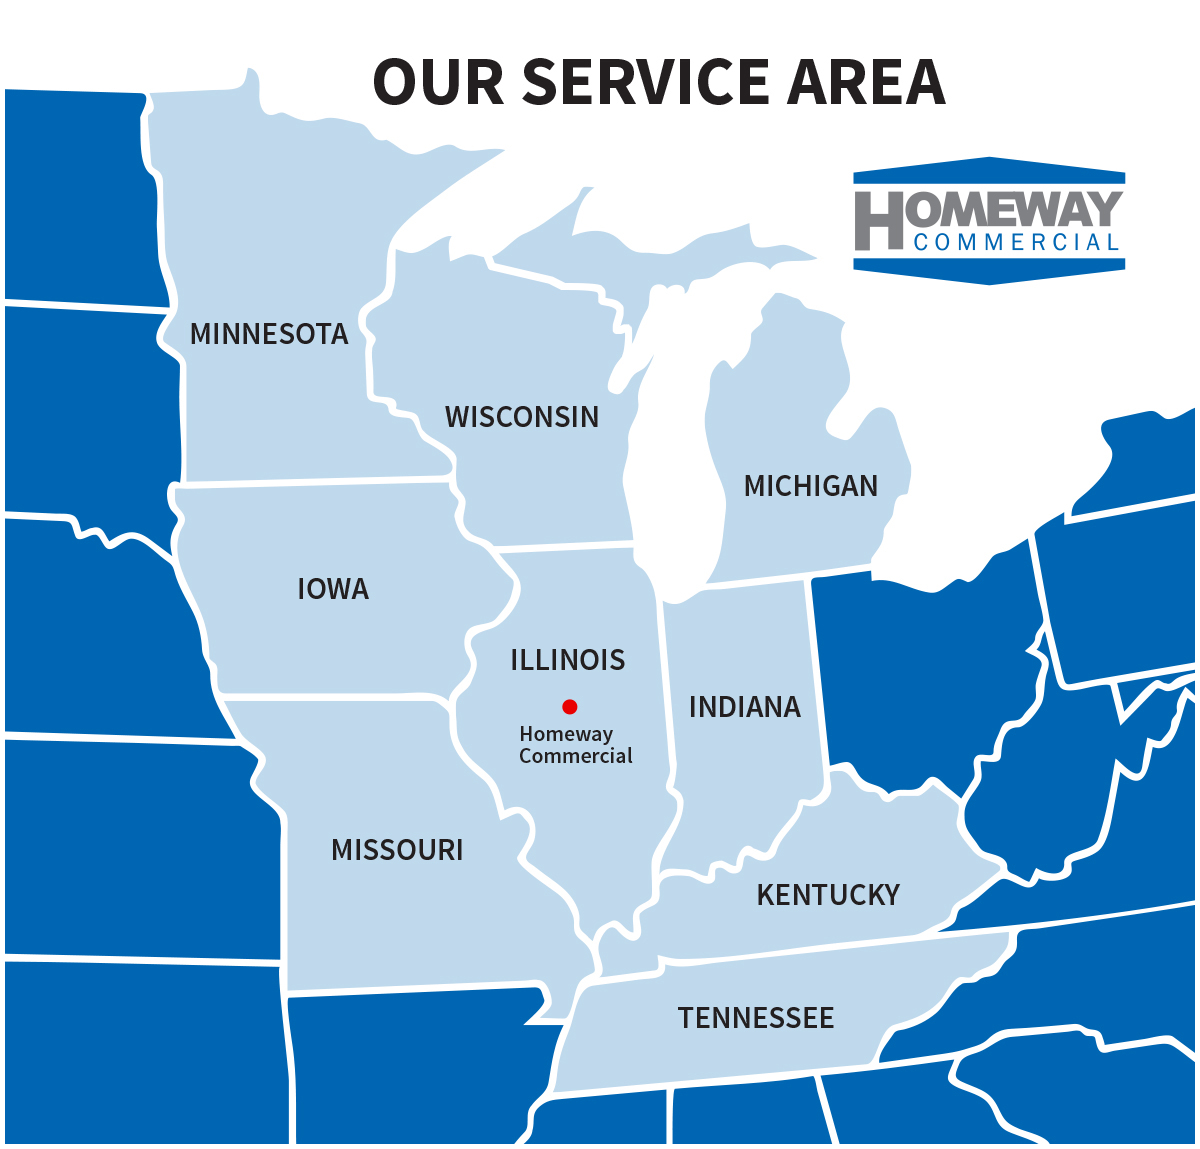 The Homeway Commercial service area inclused Illinois, Indiana, Michigan, Wisconsin, Minnesota, Iowa, Missouri, Kentucky and Tennessee